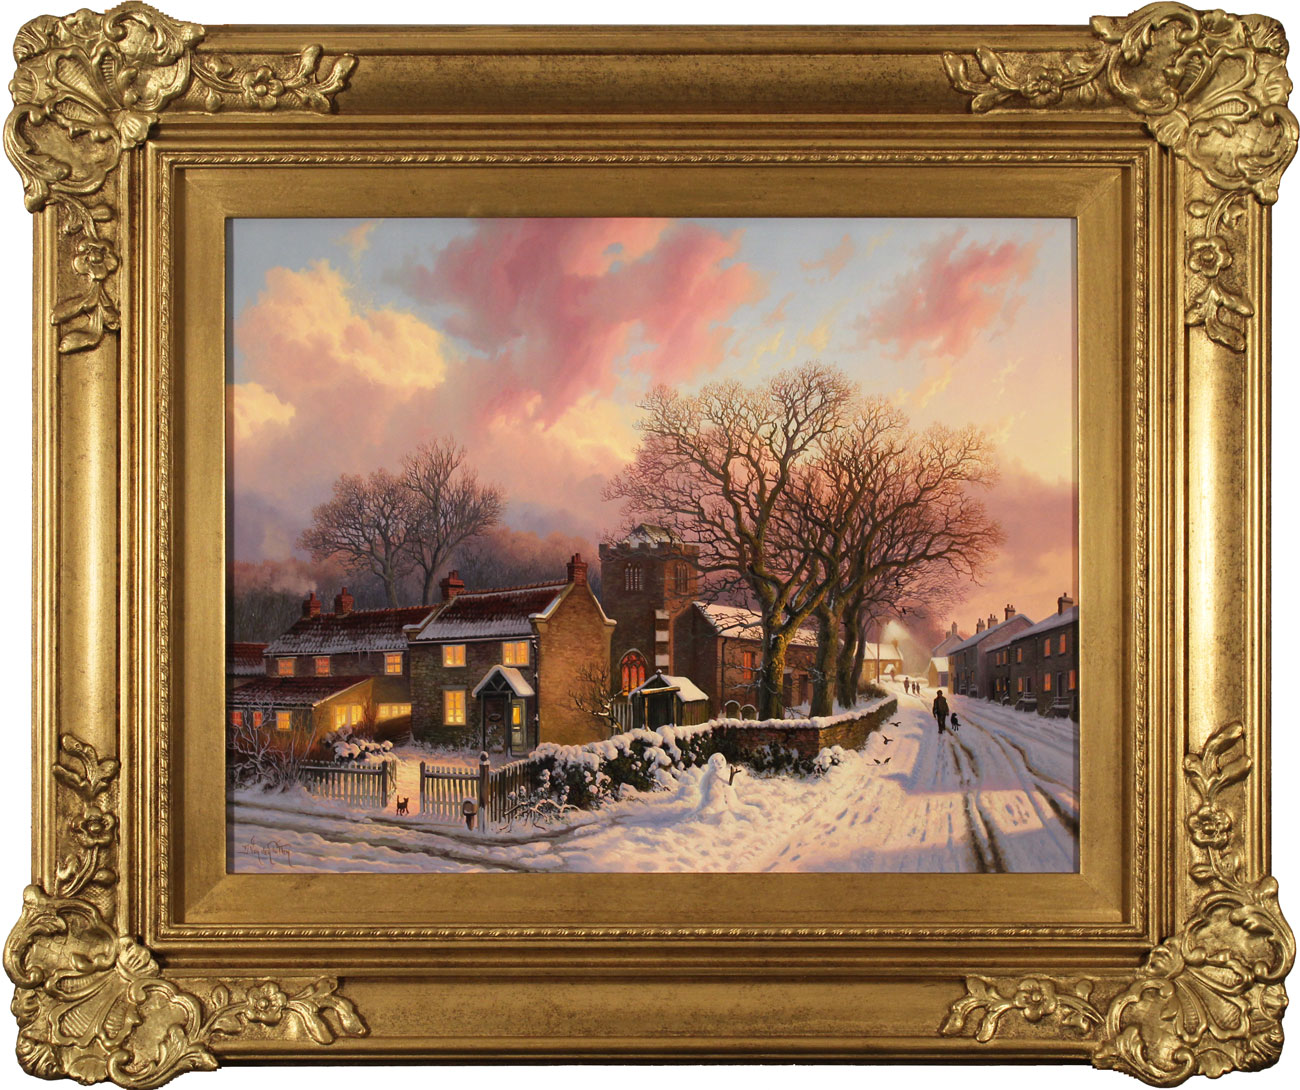 Daniel Van Der Putten, Original oil painting on panel, Evening at Lockton, North Yorkshire Click to enlarge